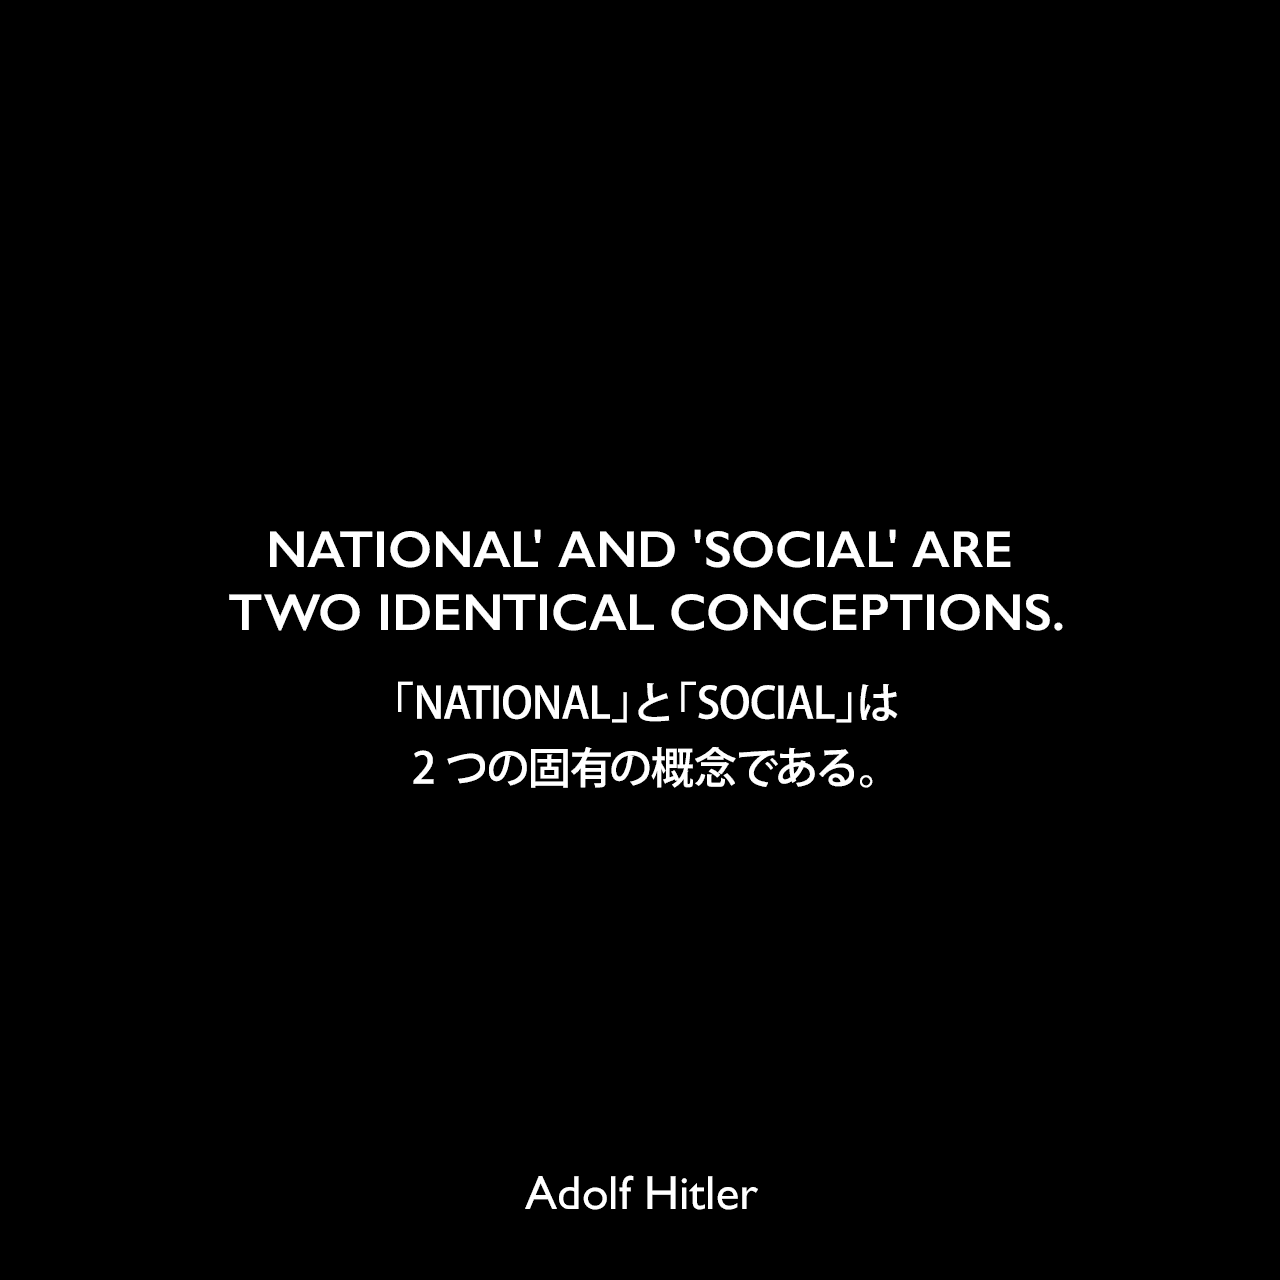 NATIONAL' AND 'SOCIAL' ARE TWO IDENTICAL CONCEPTIONS.「NATIONAL」と「SOCIAL」は2つの固有の概念である。- 1922年4月12日ミュンヘンでのスピーチよりAdolf Hitler